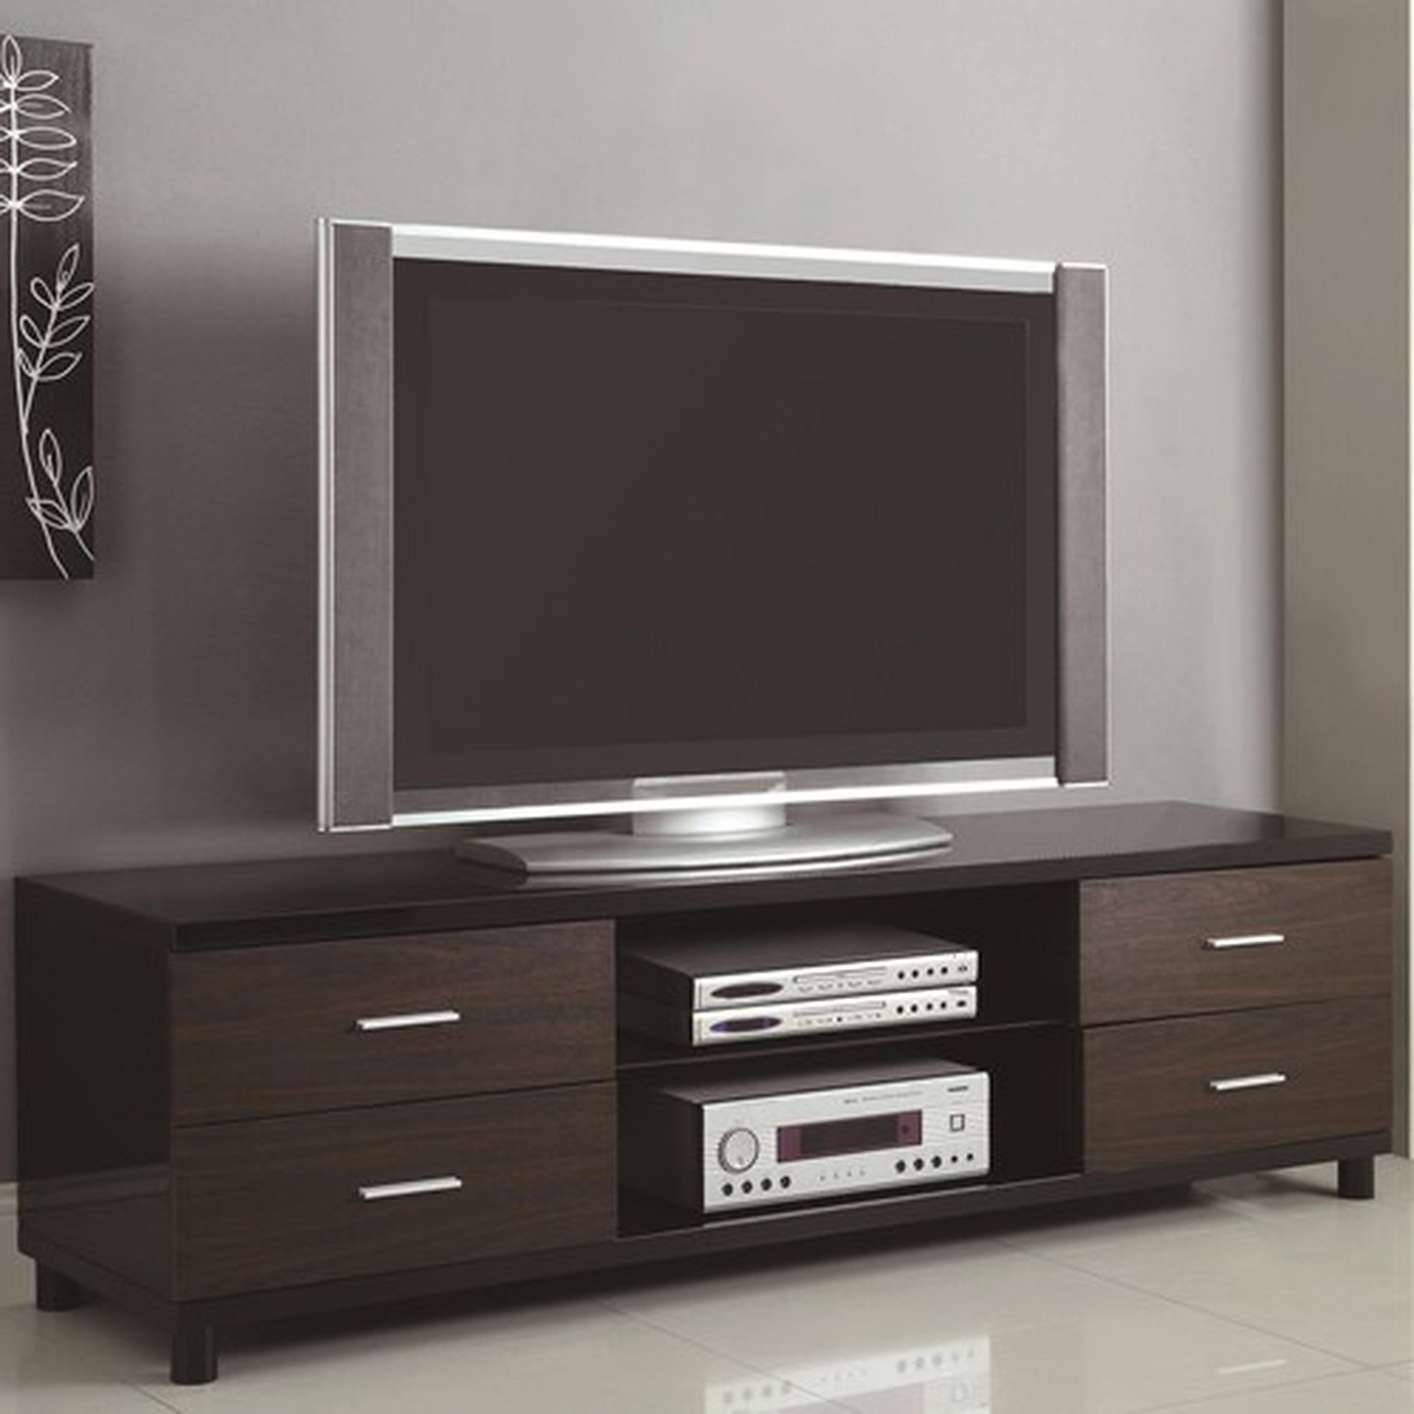 Black Wood Tv Stand – Steal A Sofa Furniture Outlet Los Angeles Ca Within Contemporary Black Tv Stands (View 12 of 15)